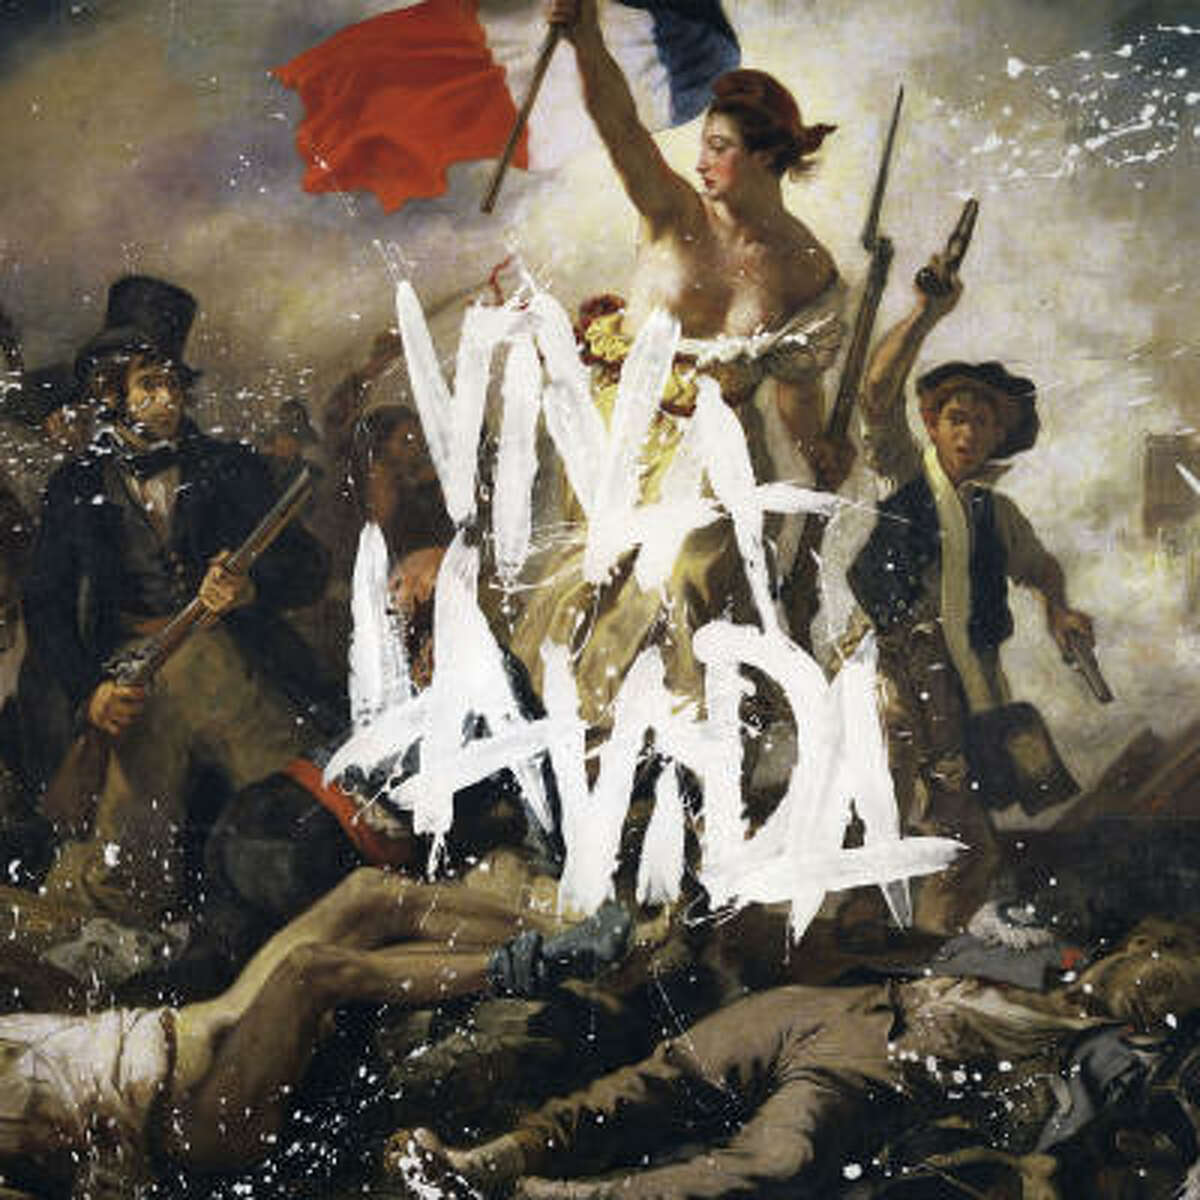 """The latest CD by Coldplay, """"Viva La Vida or Death And All His Friends"""""""